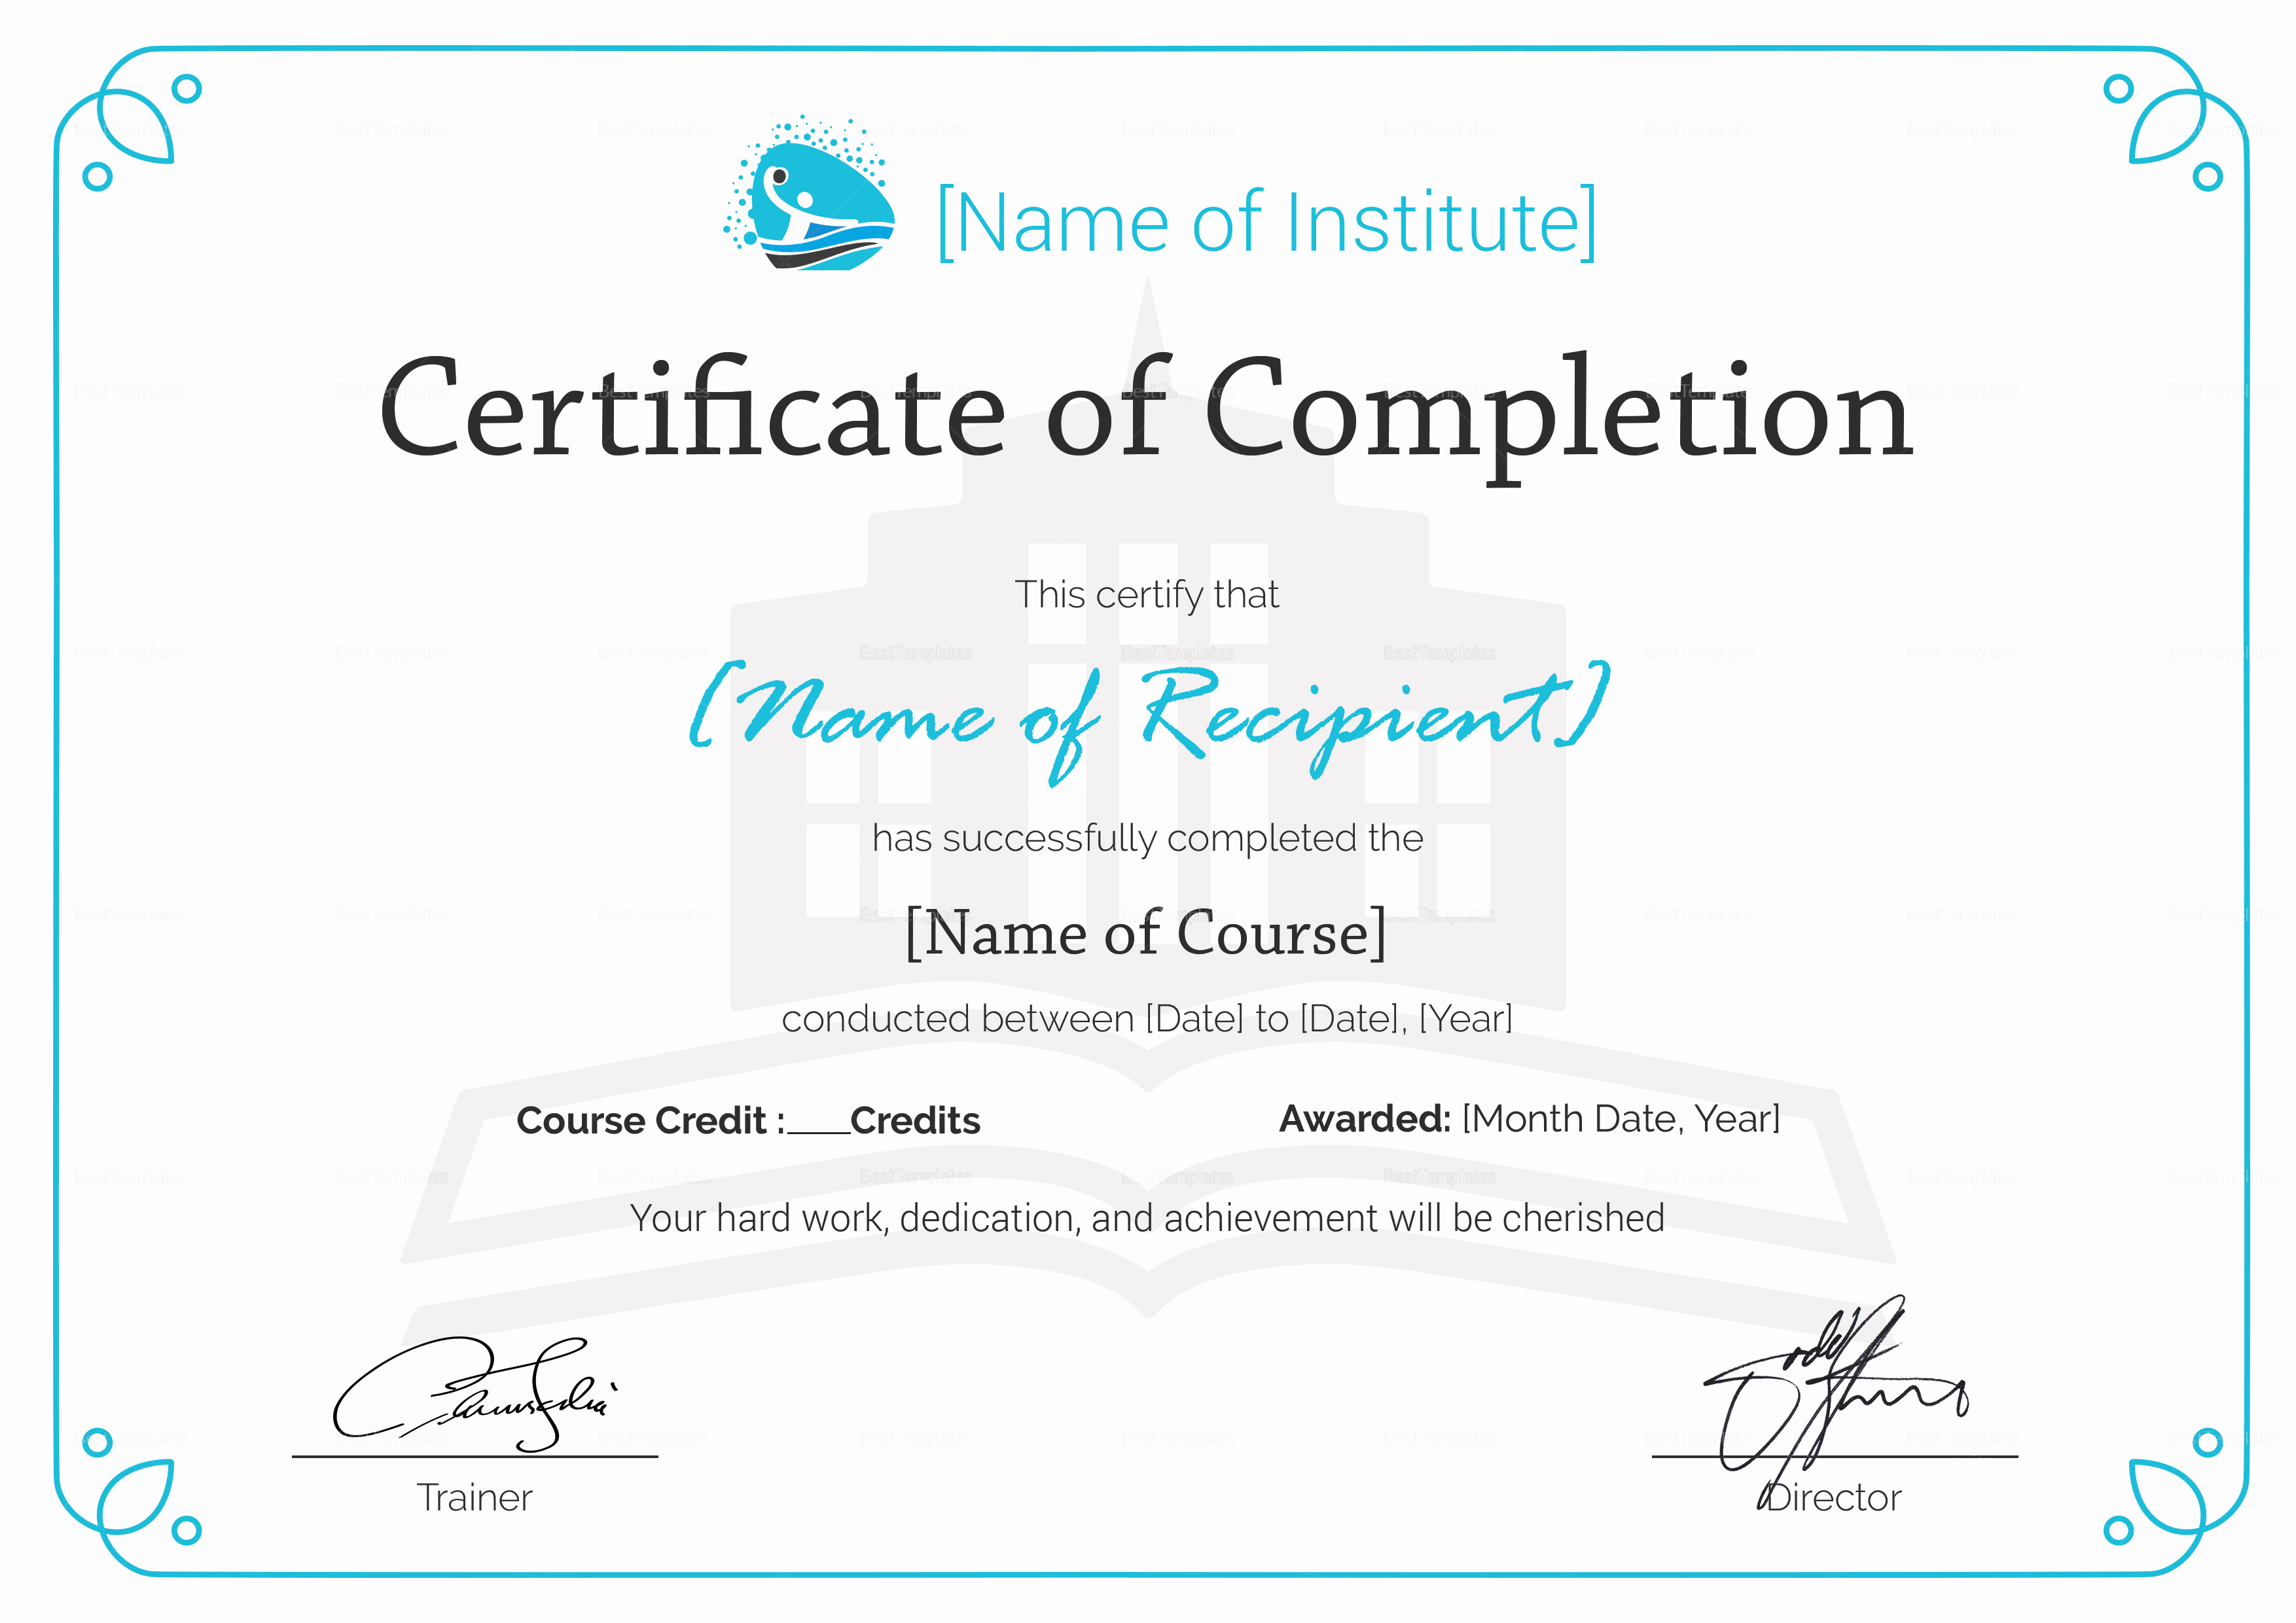 Certificate Of Completion Template Free New Training Pletion Certificate Design Template In Psd Word